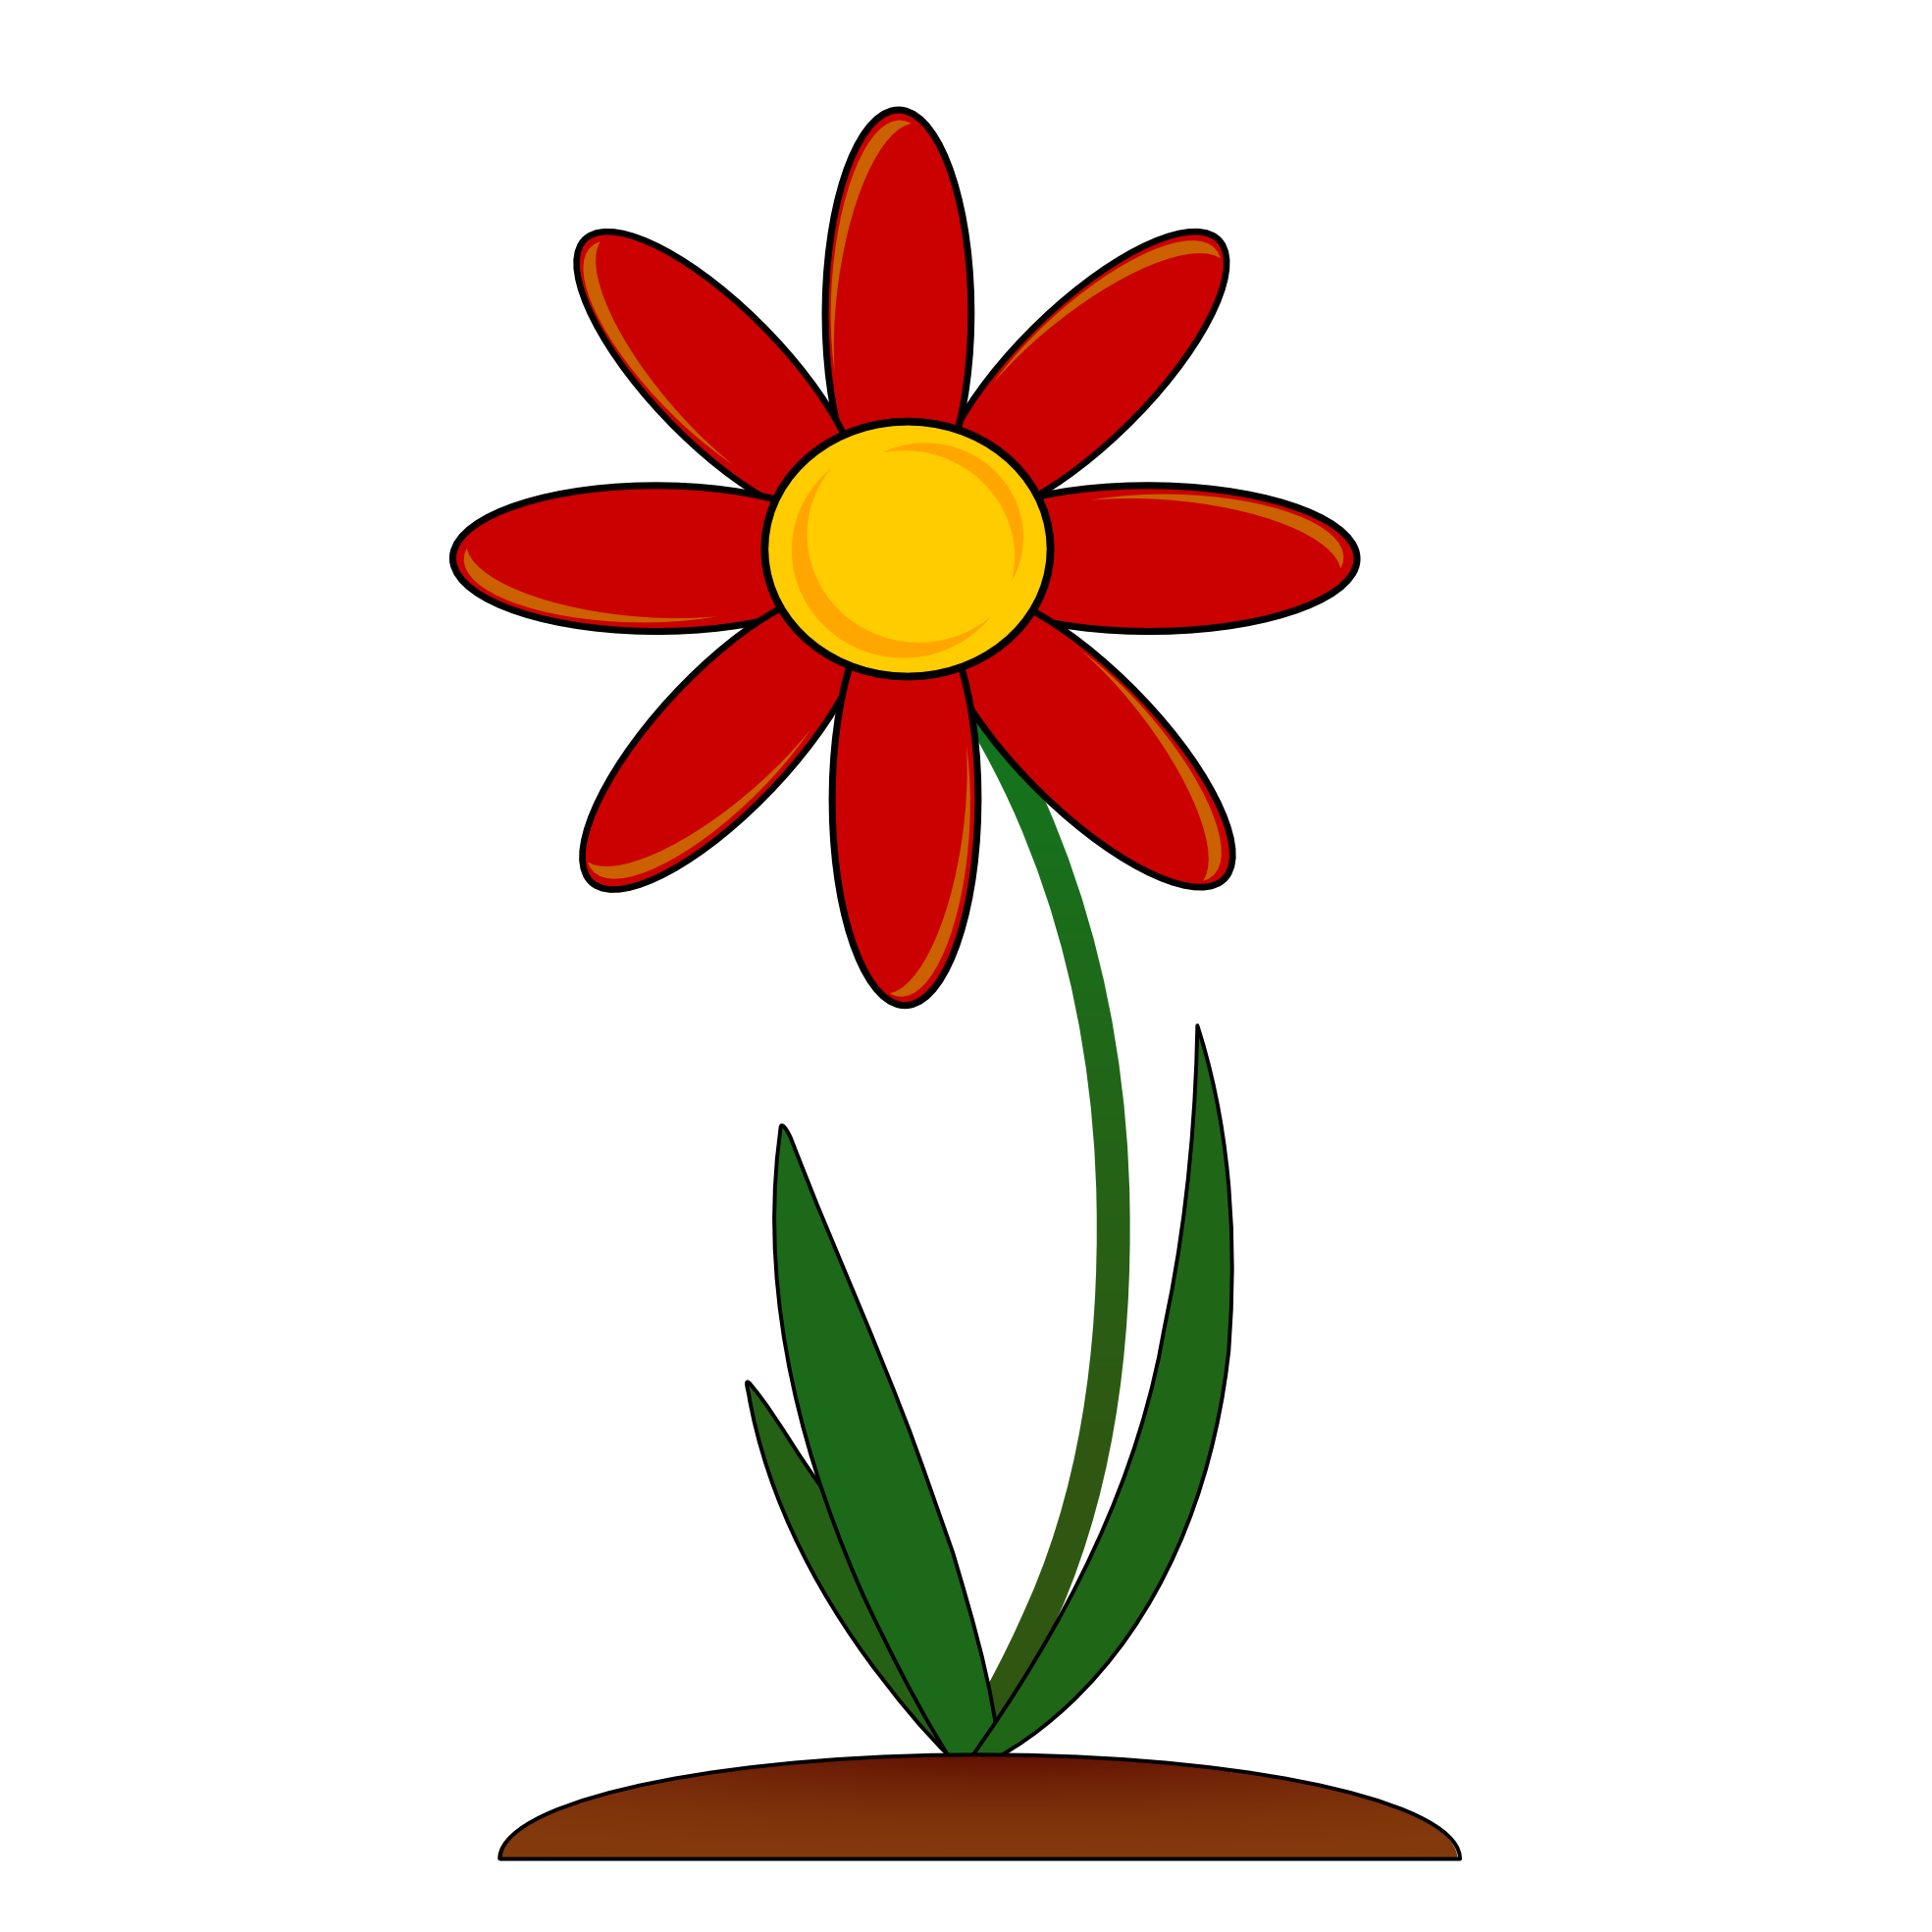 Flower clipart png graphic free stock Red Flower Border Clip Art Png graphic free stock